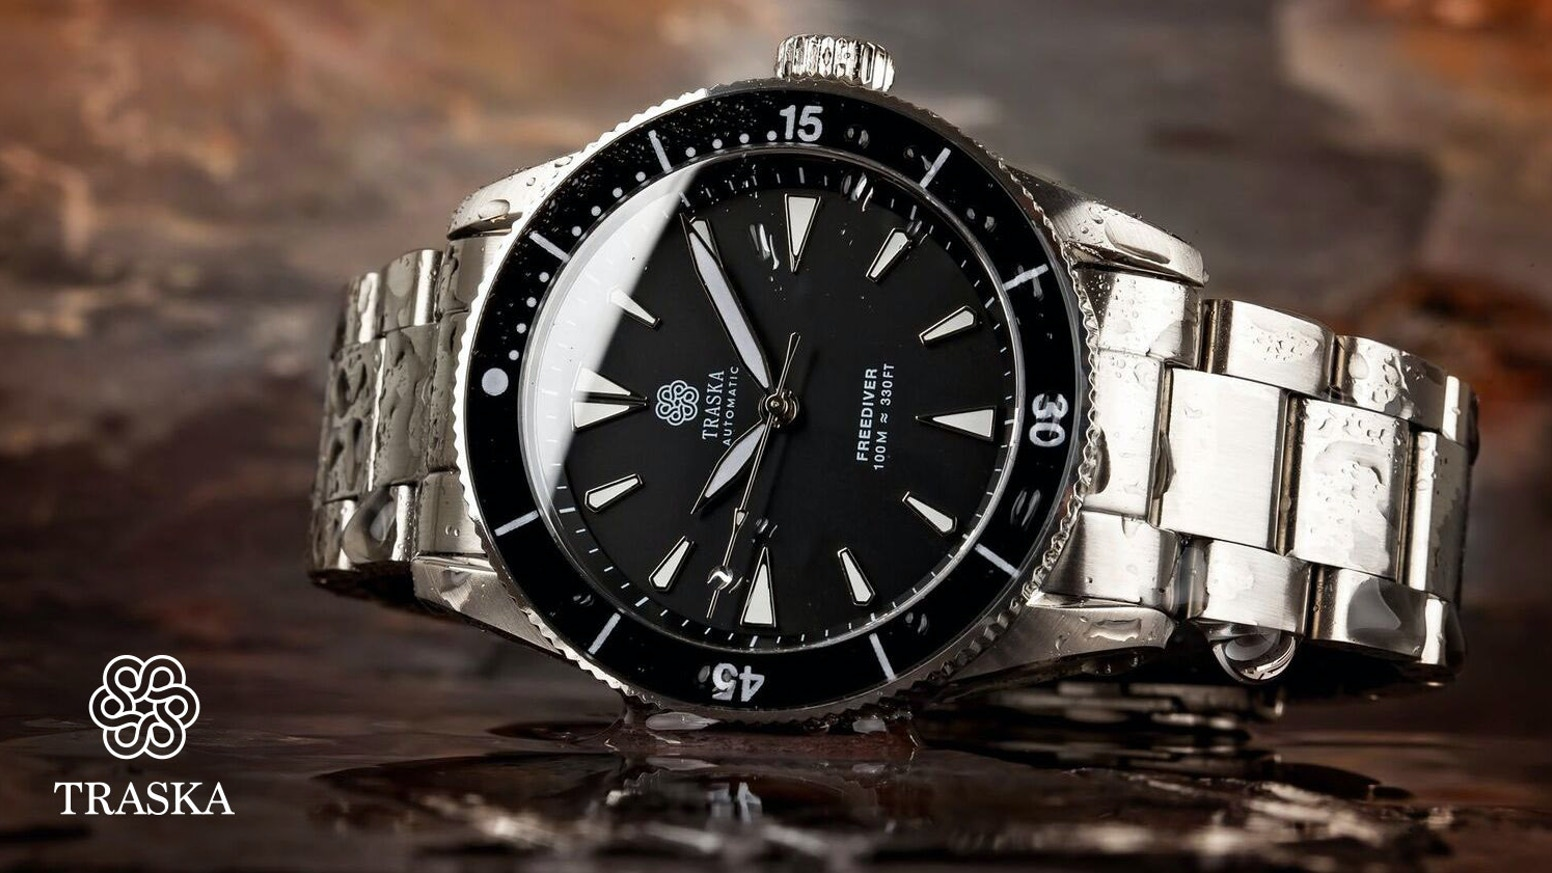 A scratch-resistant, waterproof, and shockproof automatic watch that couples robust construction with a timeless aesthetic.